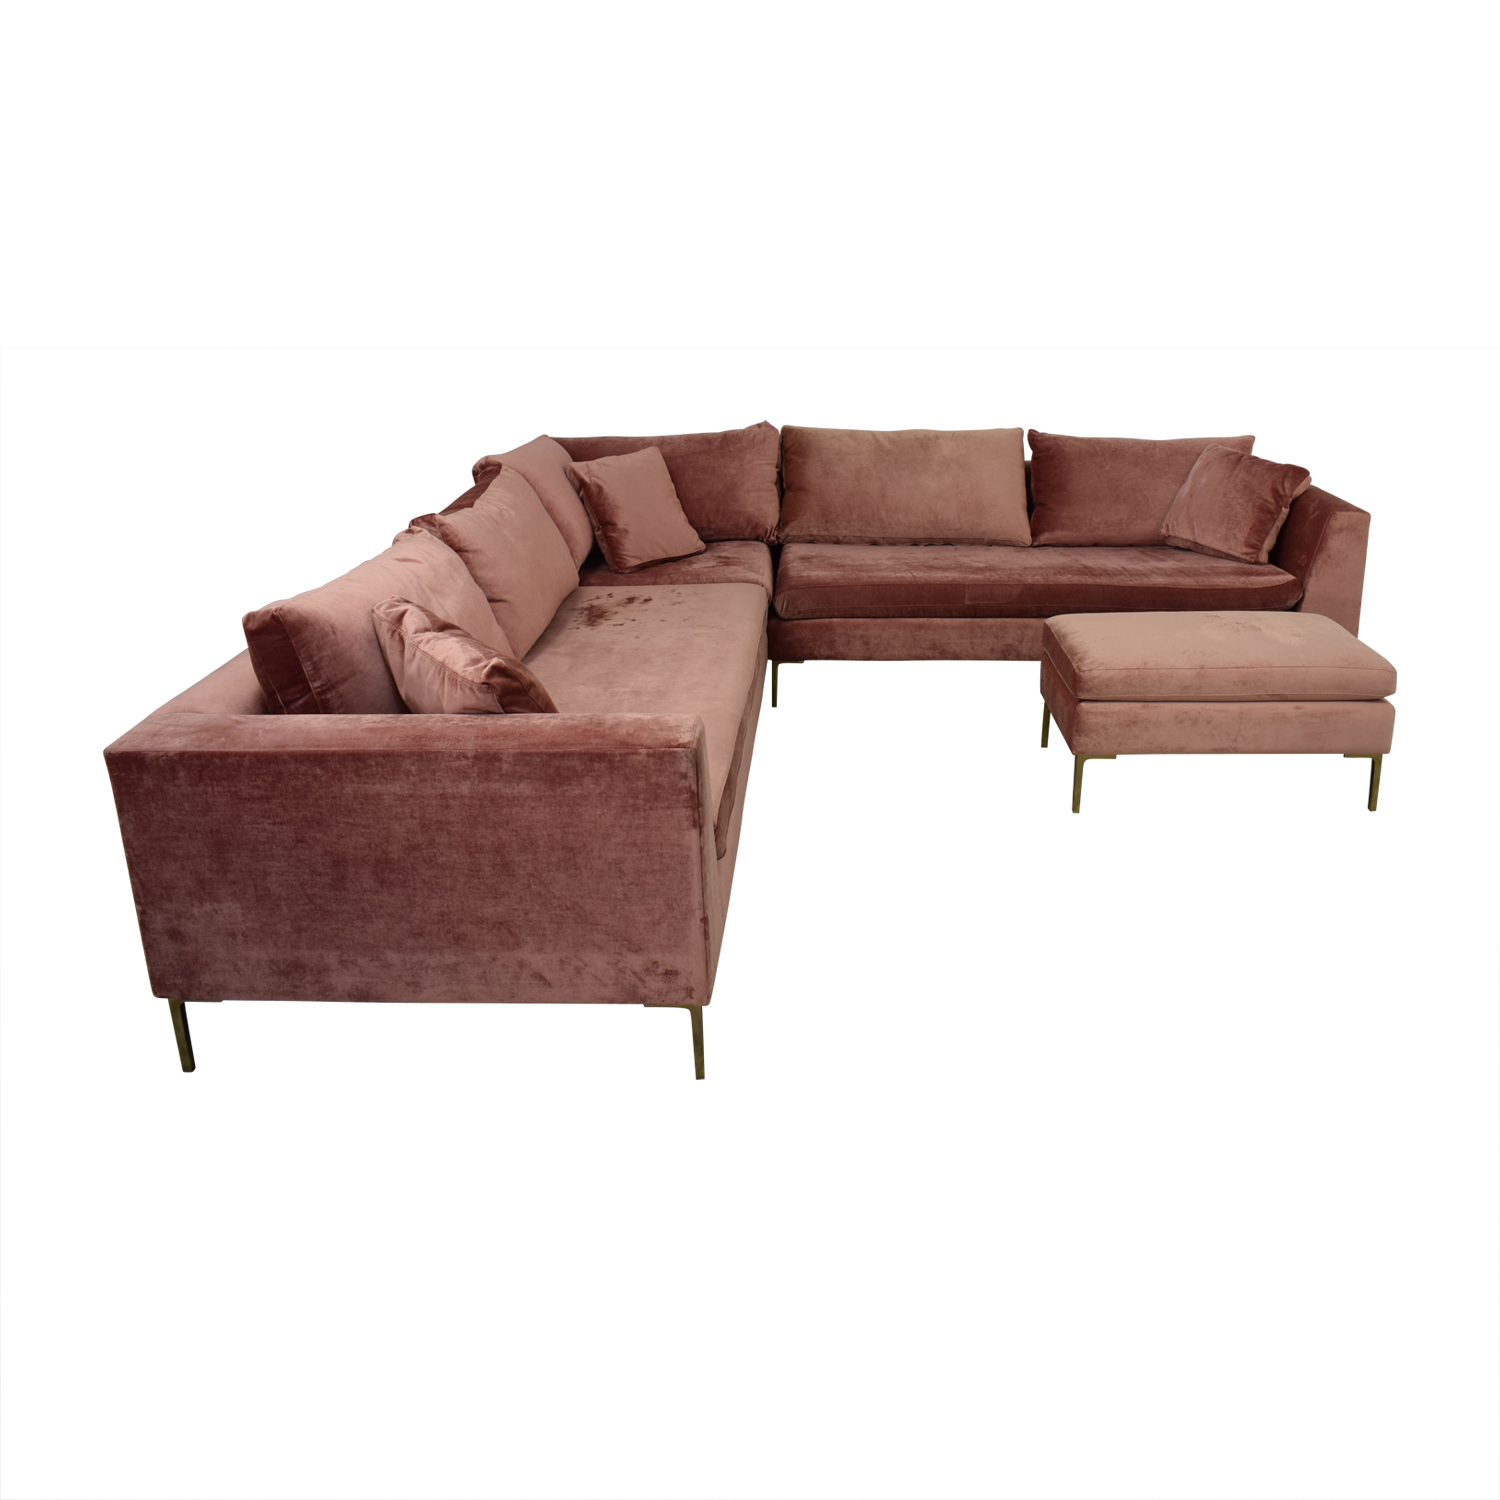 Anthropologie Anthropologie Edlyn Pink Sectional with Ottoman used